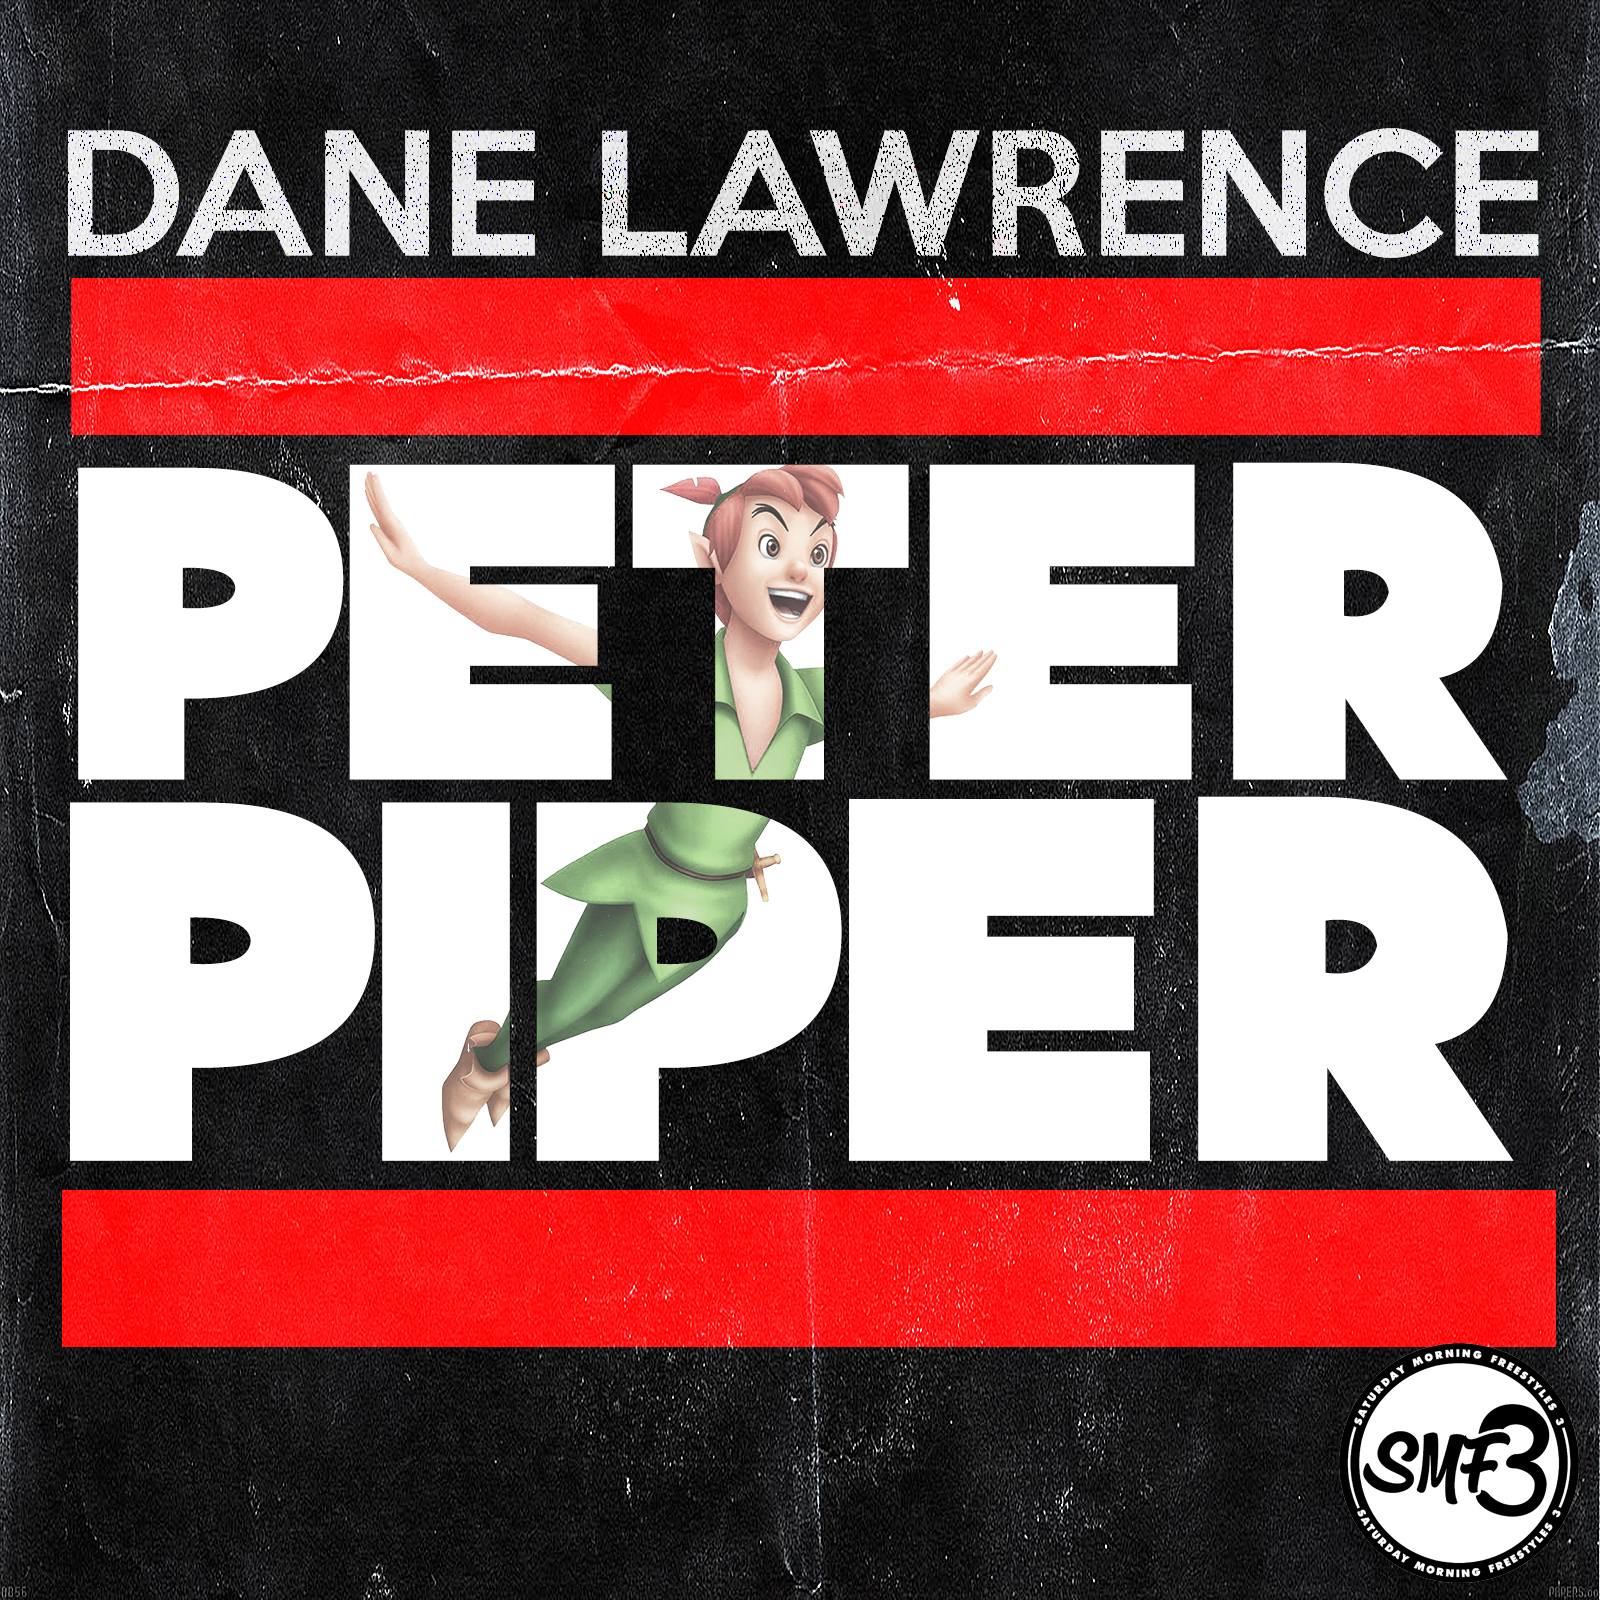 Dane Lawrence - Peter Piper - Saturday Morning Freestyles 3